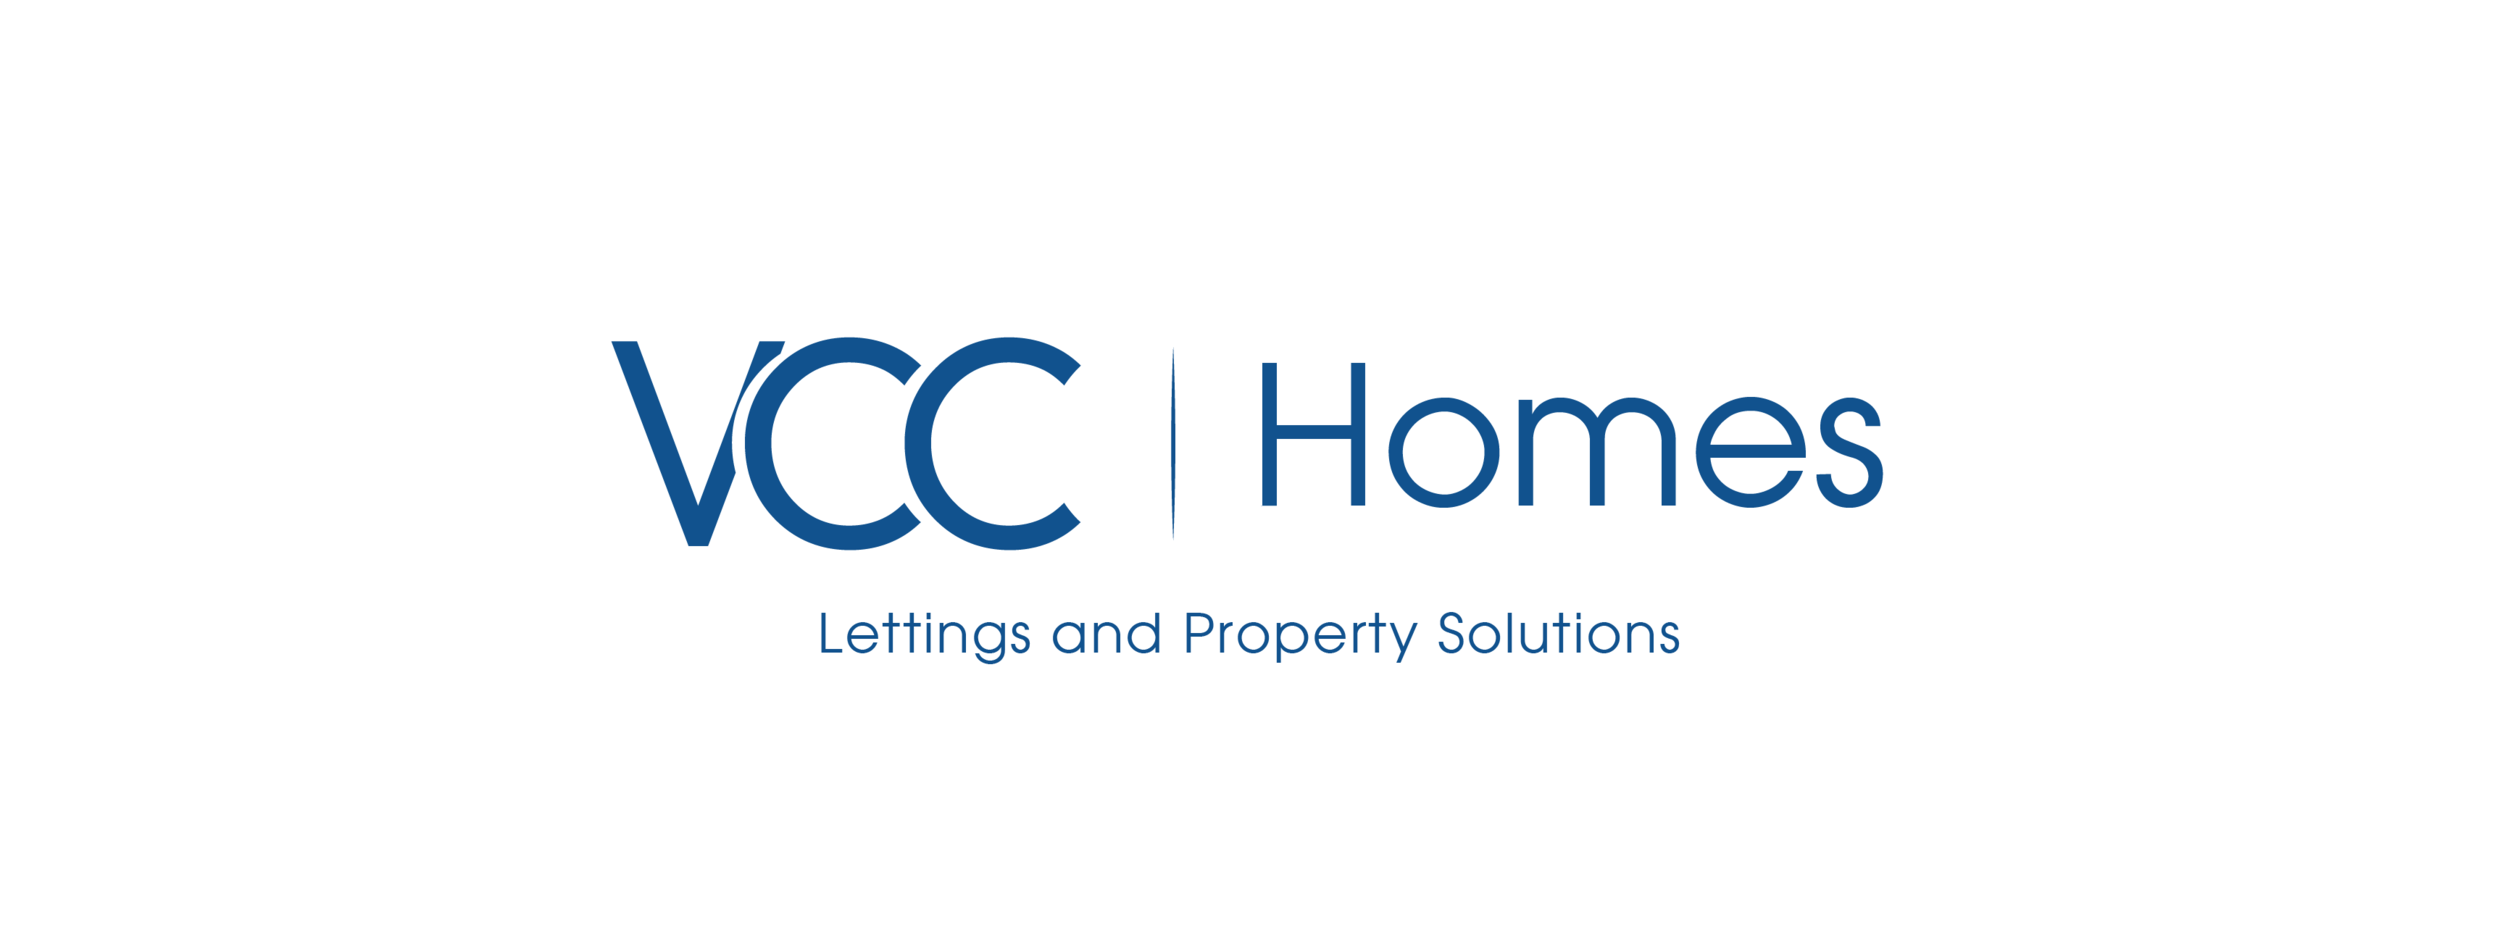 VCC Homes - Facebook Cover-02.png